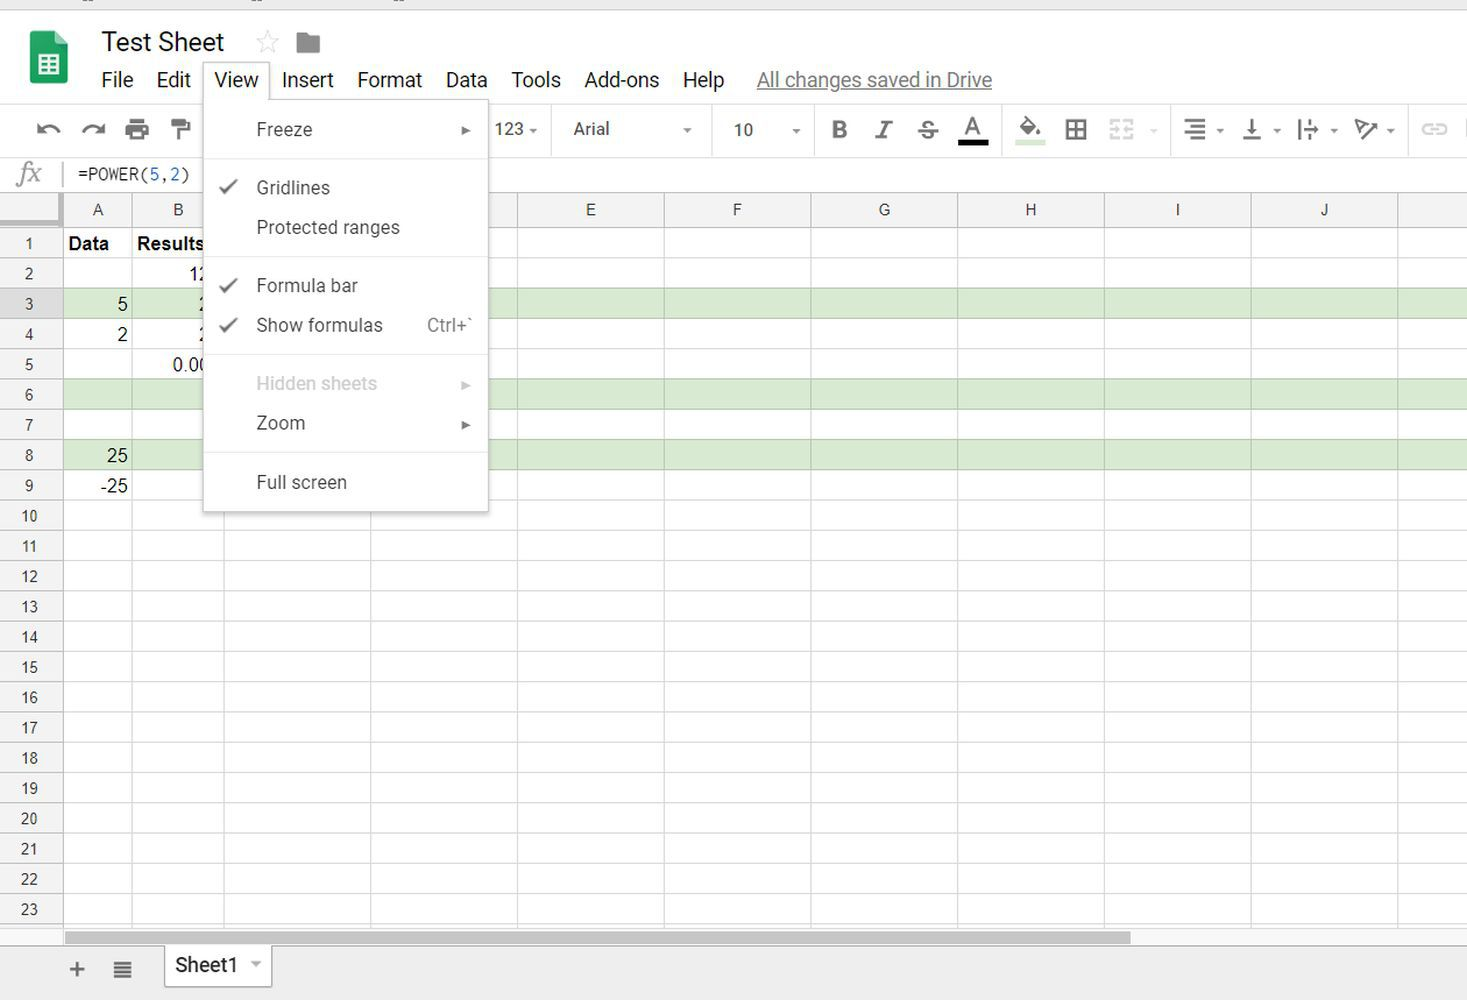 how to enable editing in excel sheet